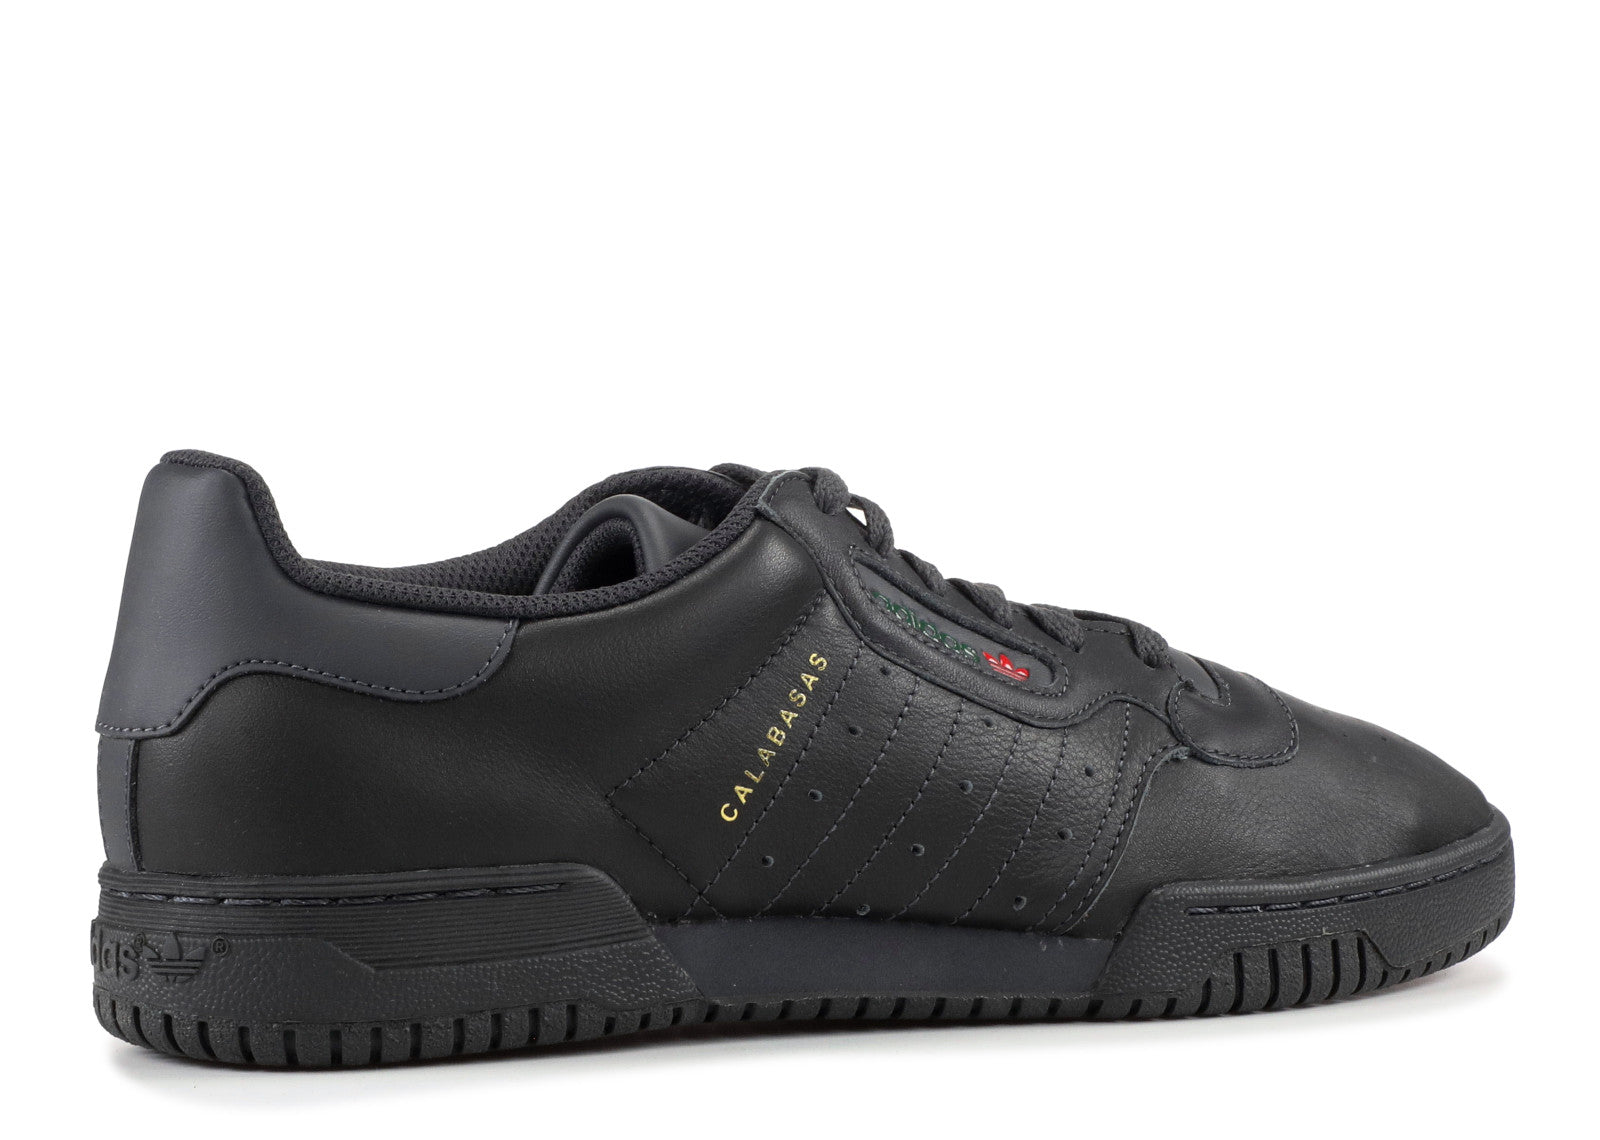 Adidas Yeezy Powerphase Calabasas 'Core Black'